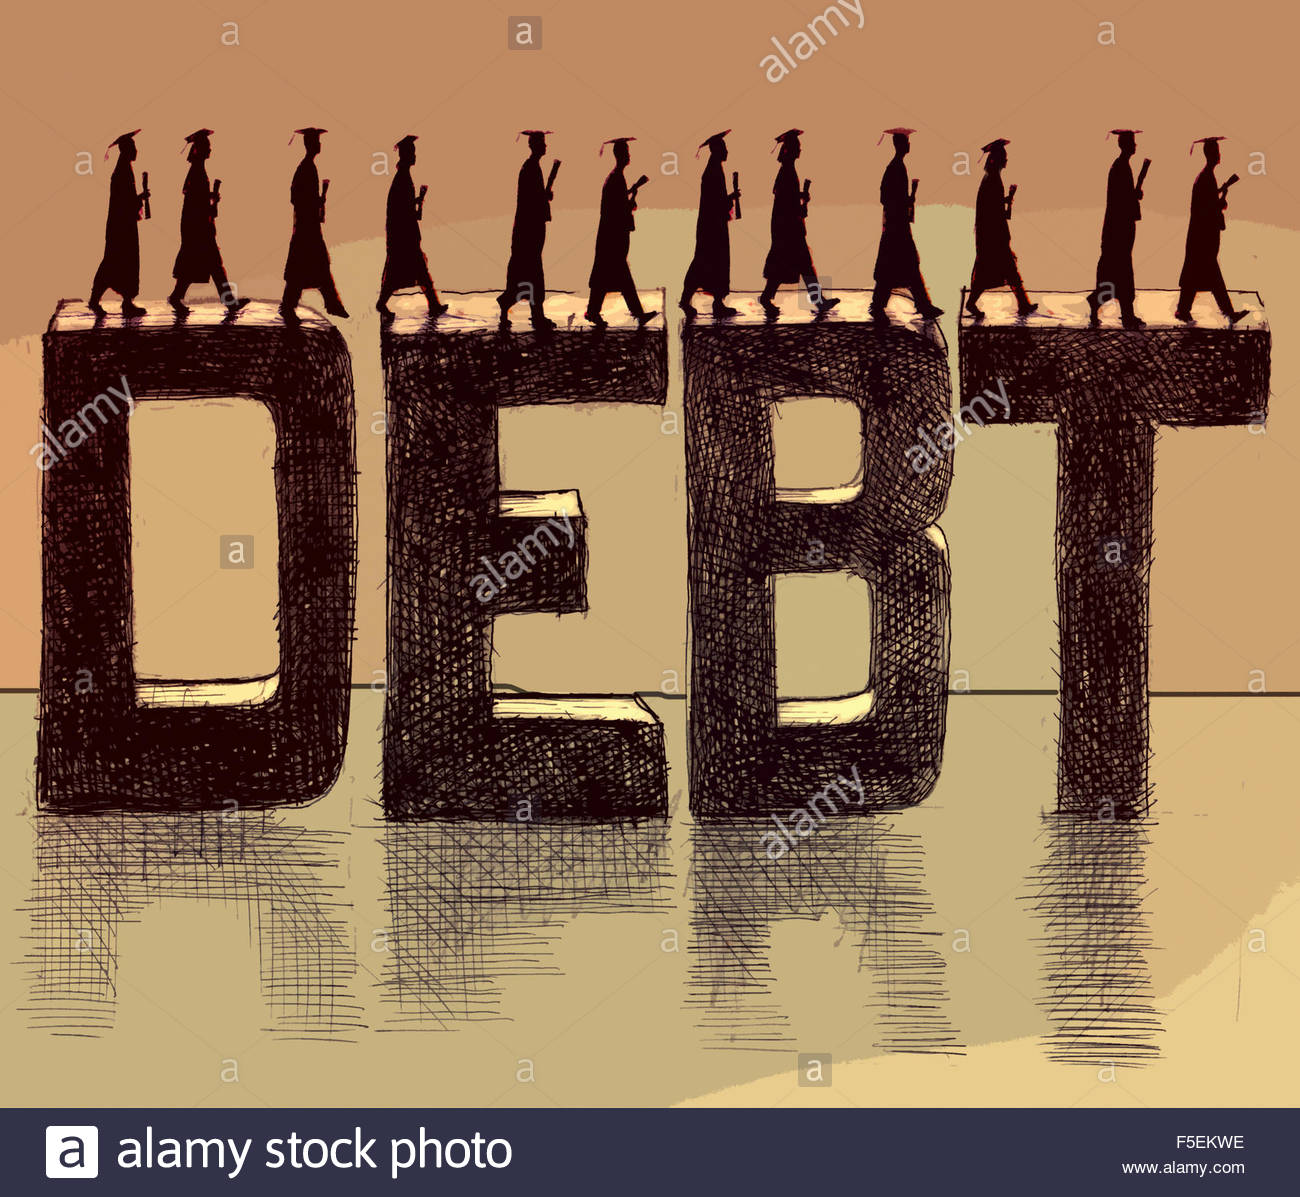 Graduate students walking across the word 'debt' - Stock Image